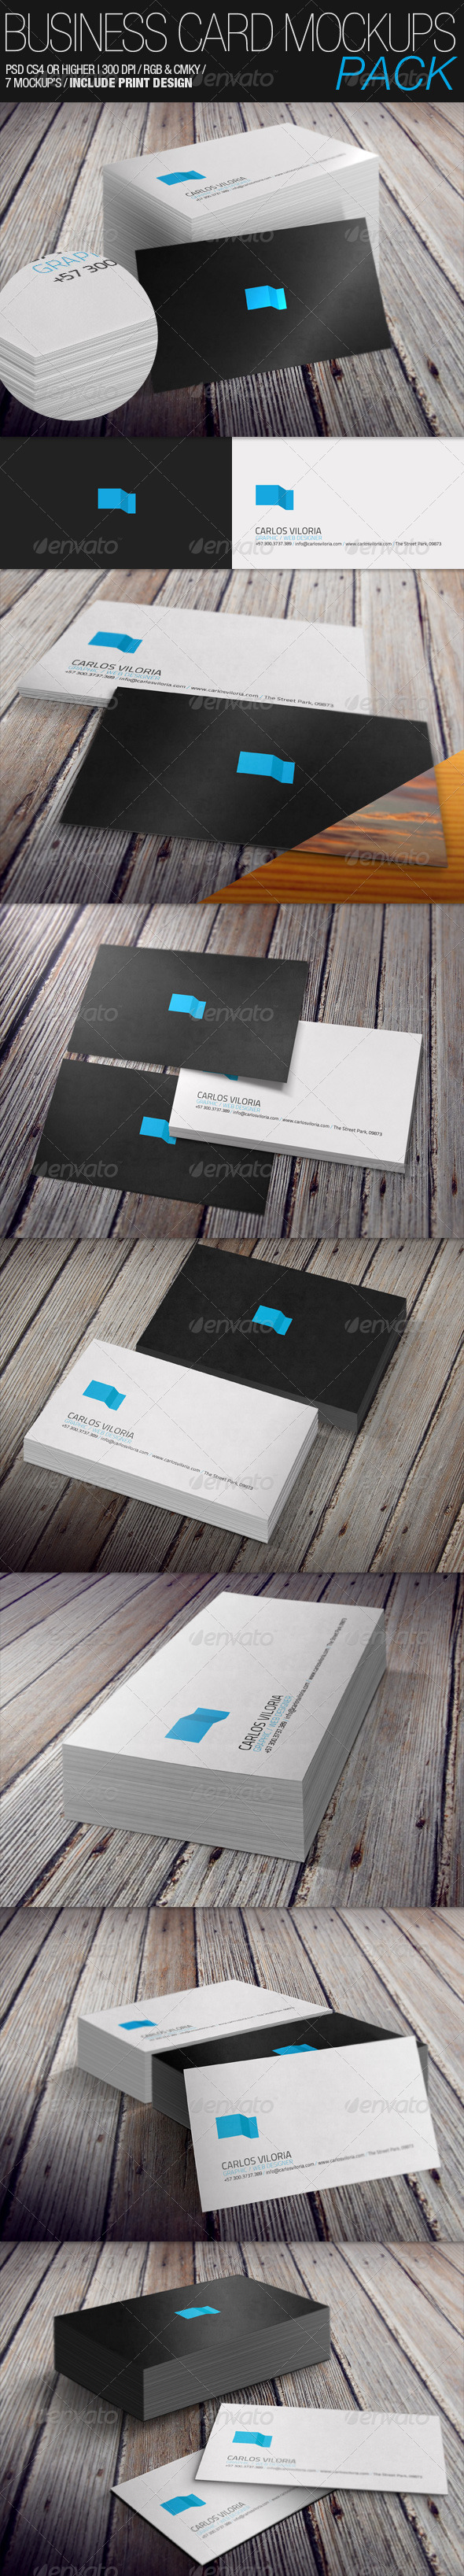 GraphicRiver Business Card Mockup s Pack 3494903